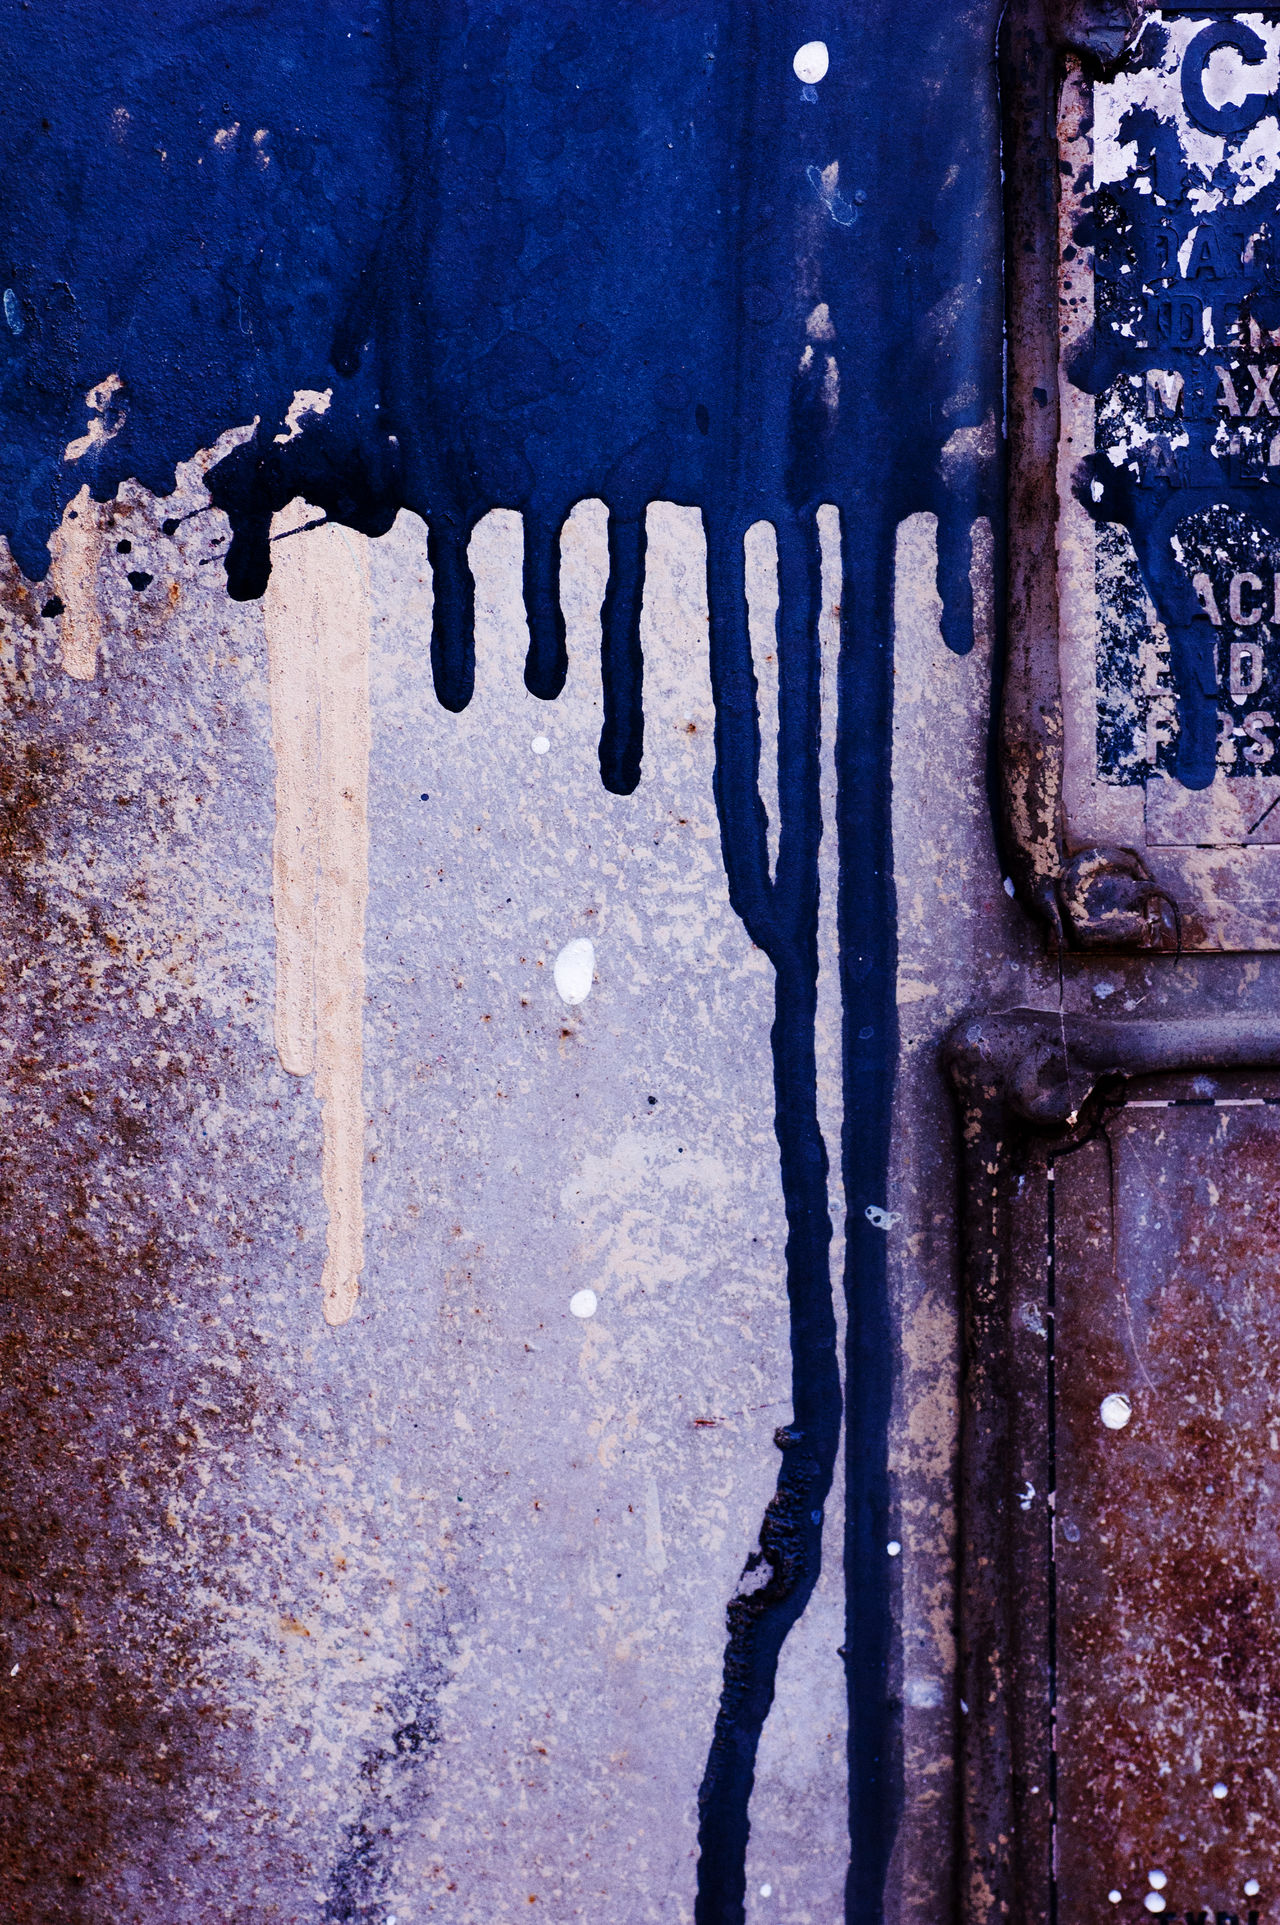 Urban Art #5 Abstract Beige Blue Color Blue Paint Close-up Colorful Colors And Patterns Day Dots Full Frame Harbor Layers Layers And Colors Layers And Textures Metal Outdoors Paint Painted Runny Paint Rusty Rustygoodness Splatter Paint Splattered Splatters Weathered